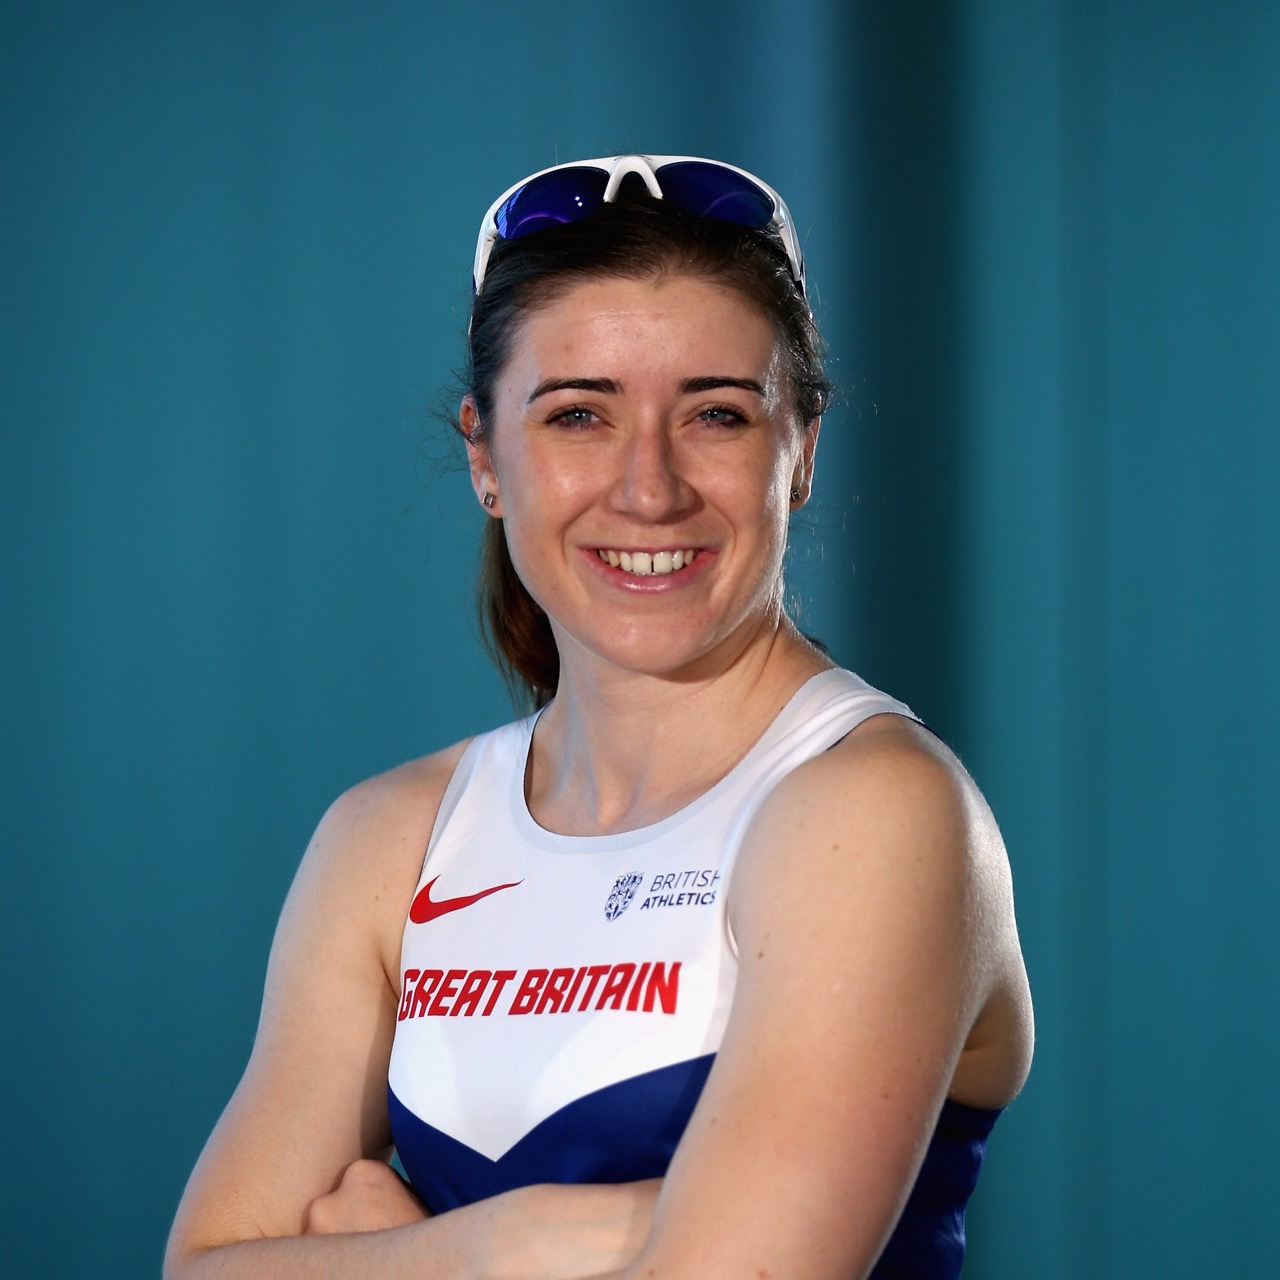 Libby Clegg in team GB tracksuit